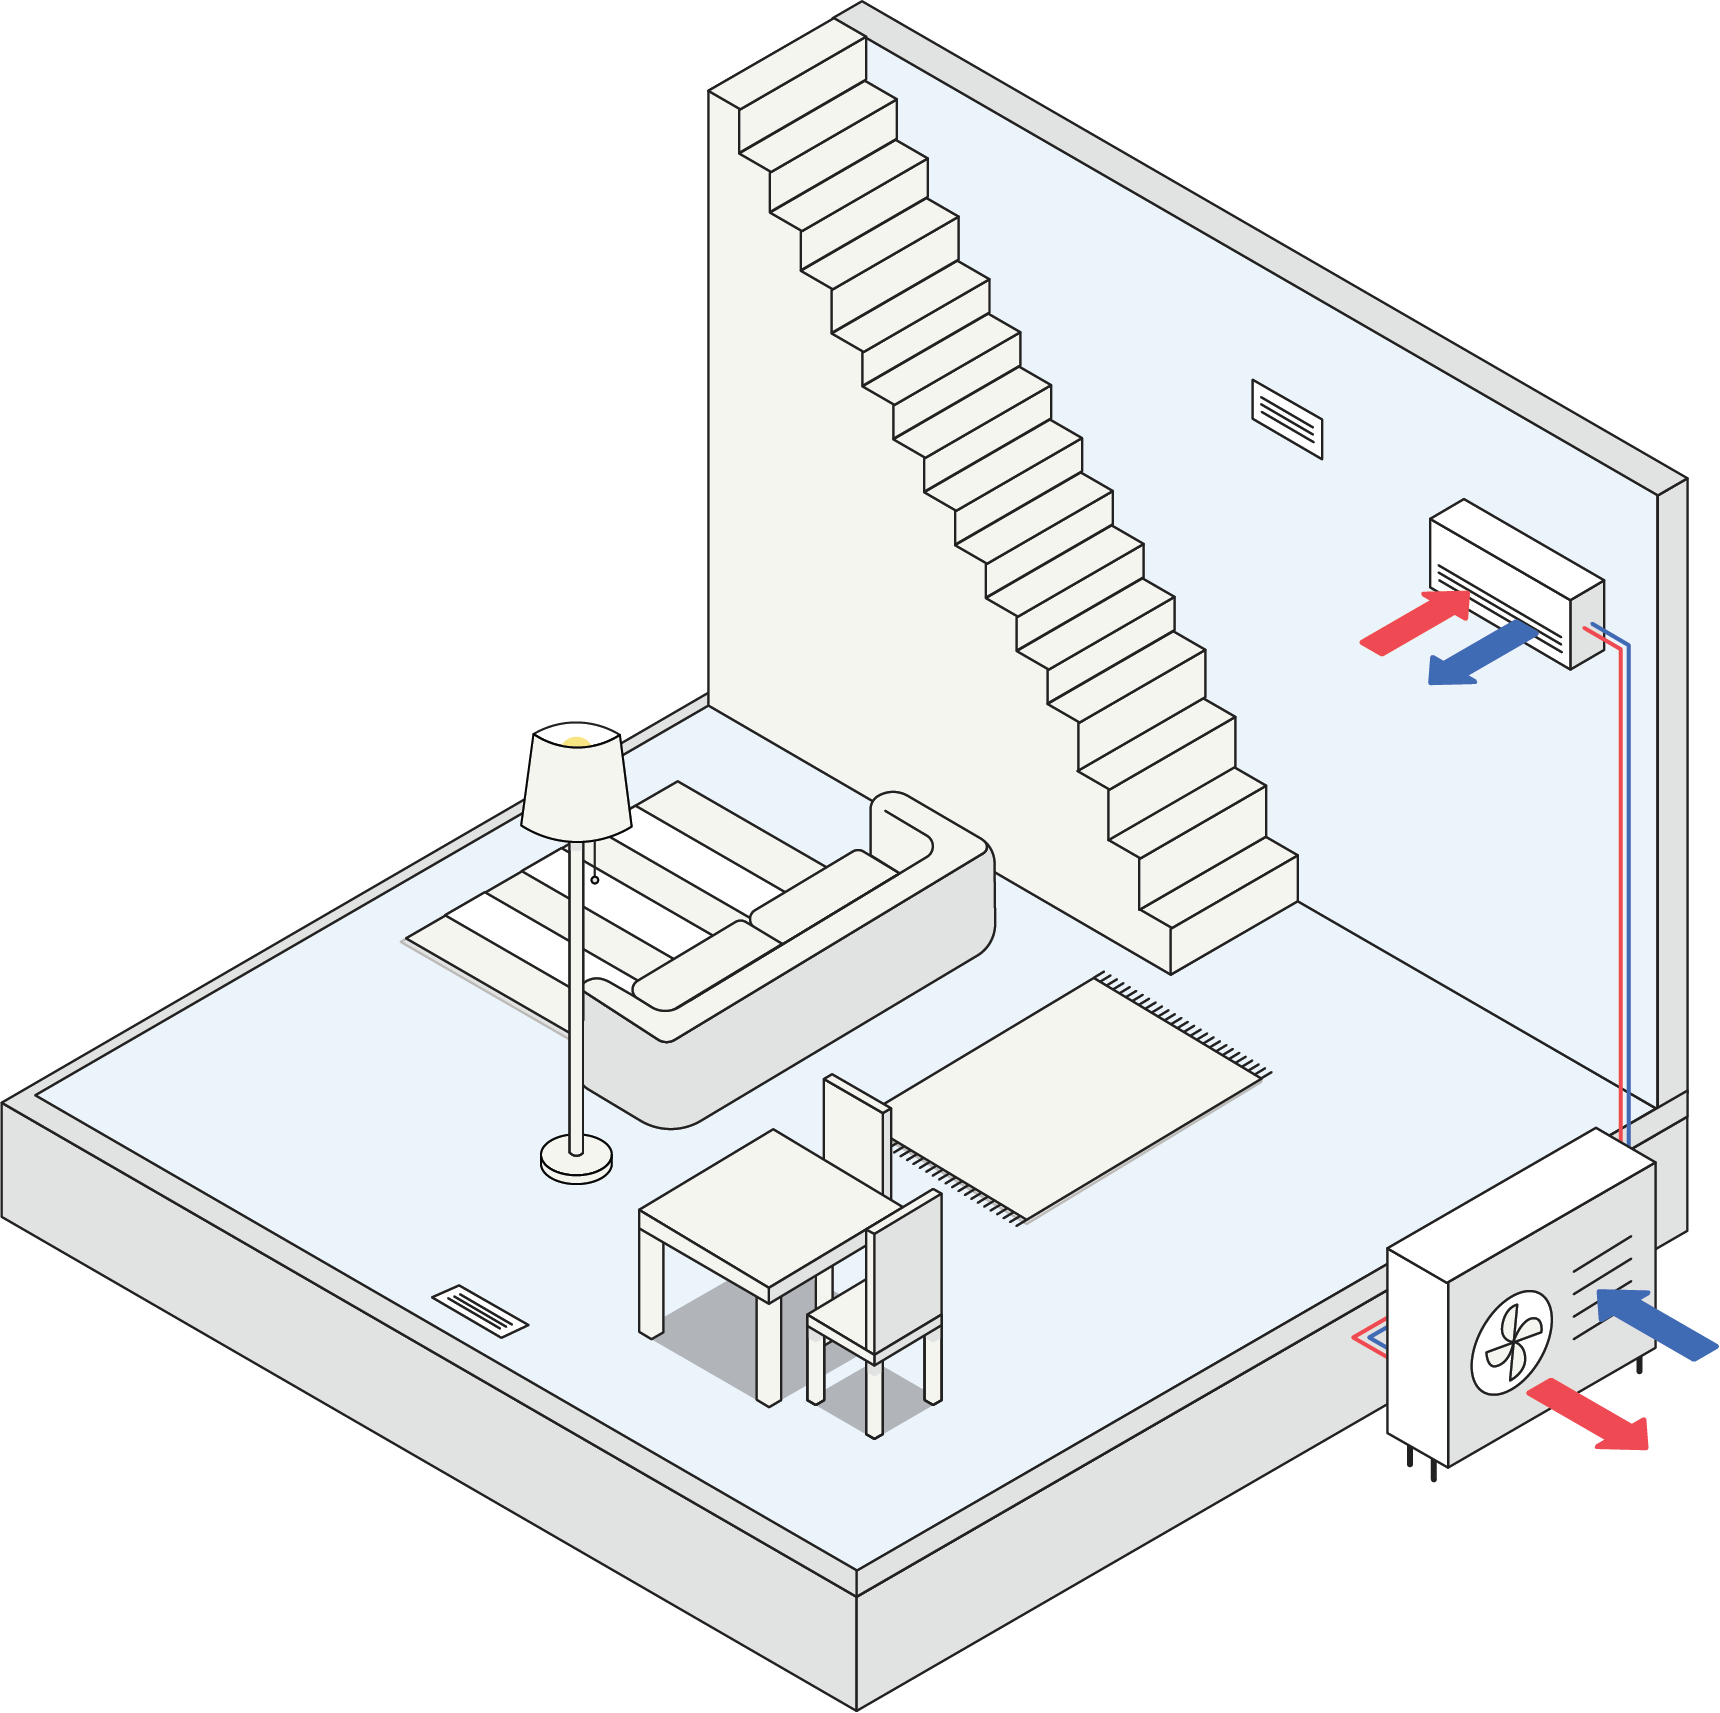 Illustration of a room with a ductless unit